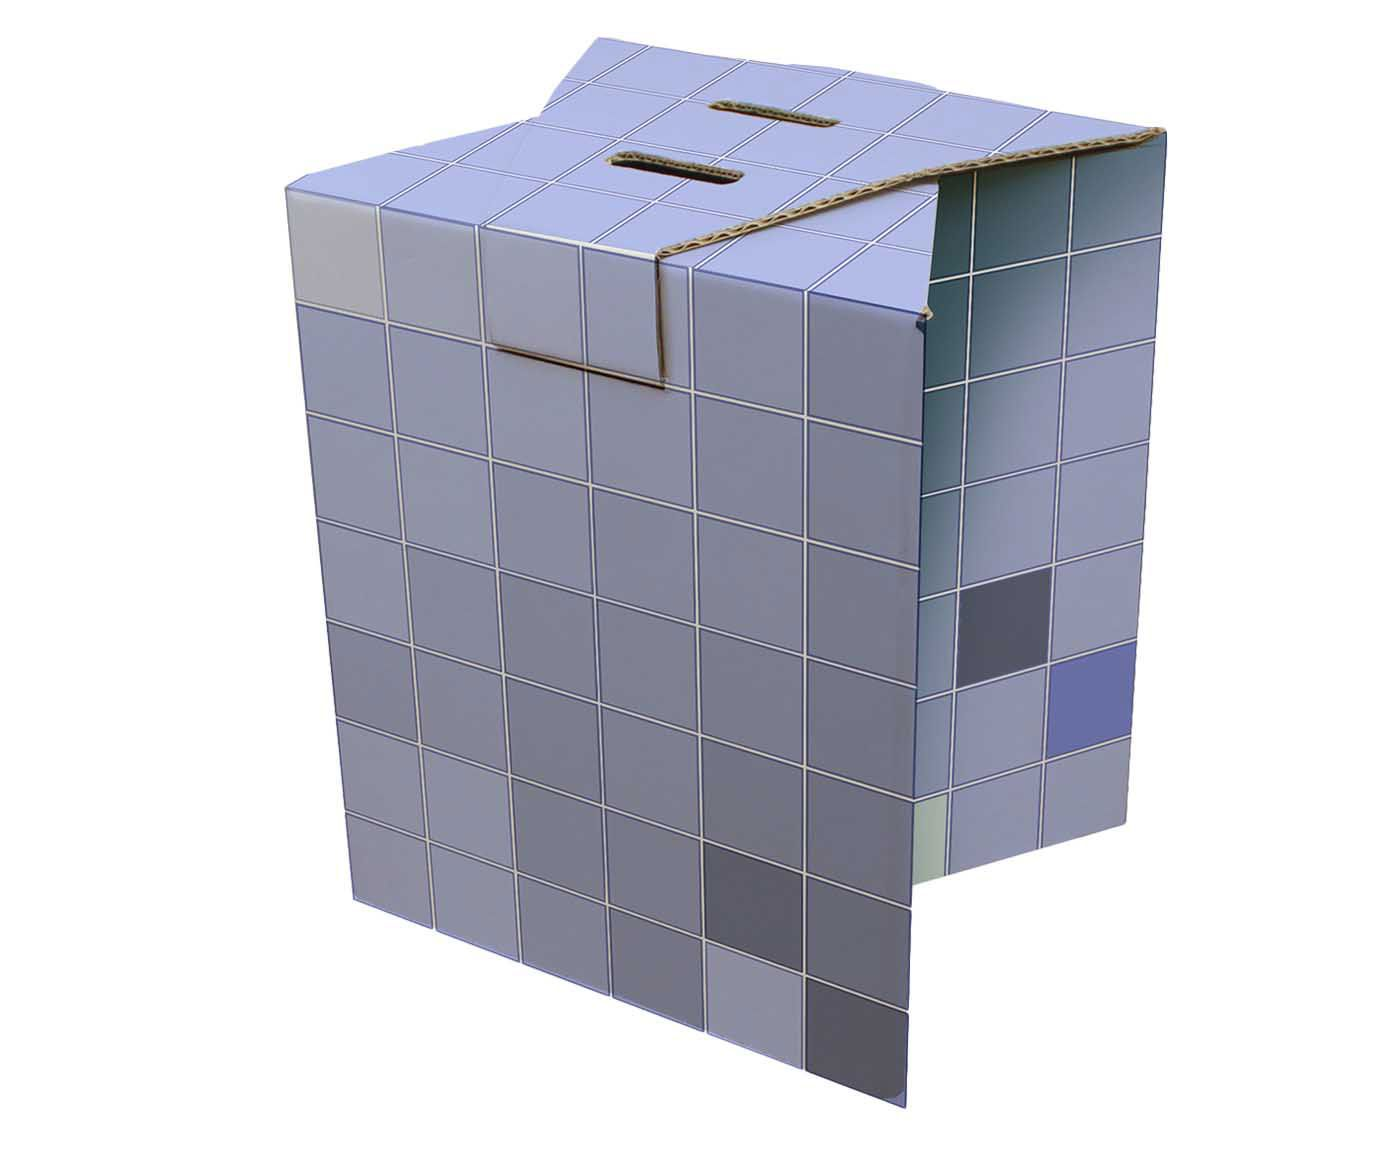 Banco rube cube - space | Westwing.com.br